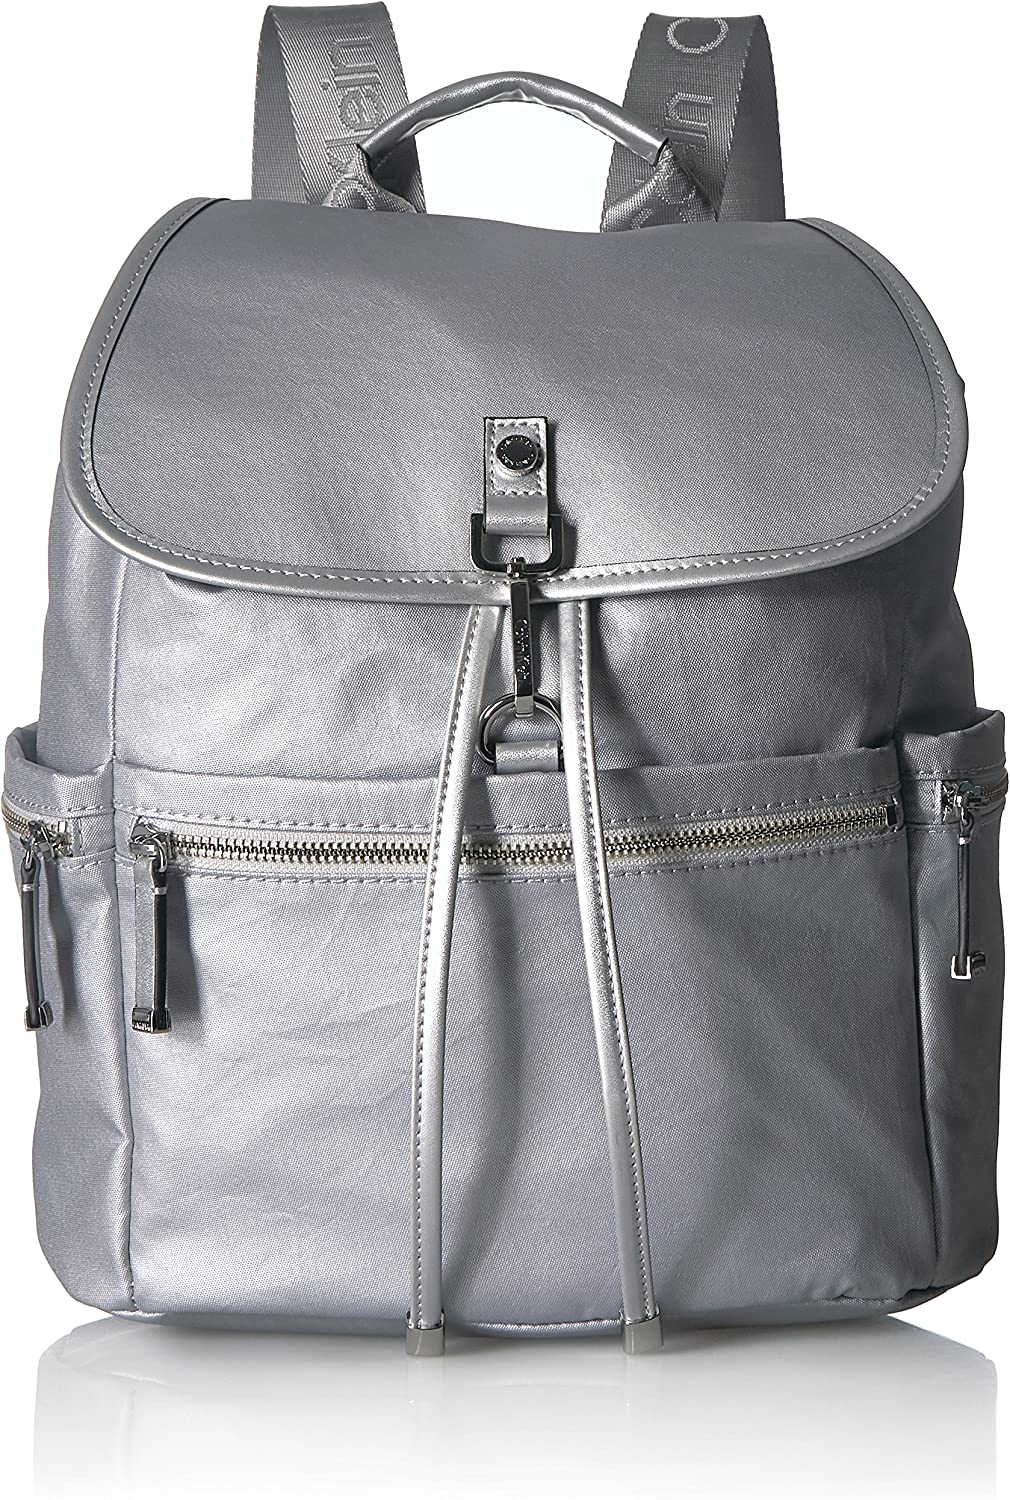 Calvin Klein Lianna Nylon Flap Over Backpack